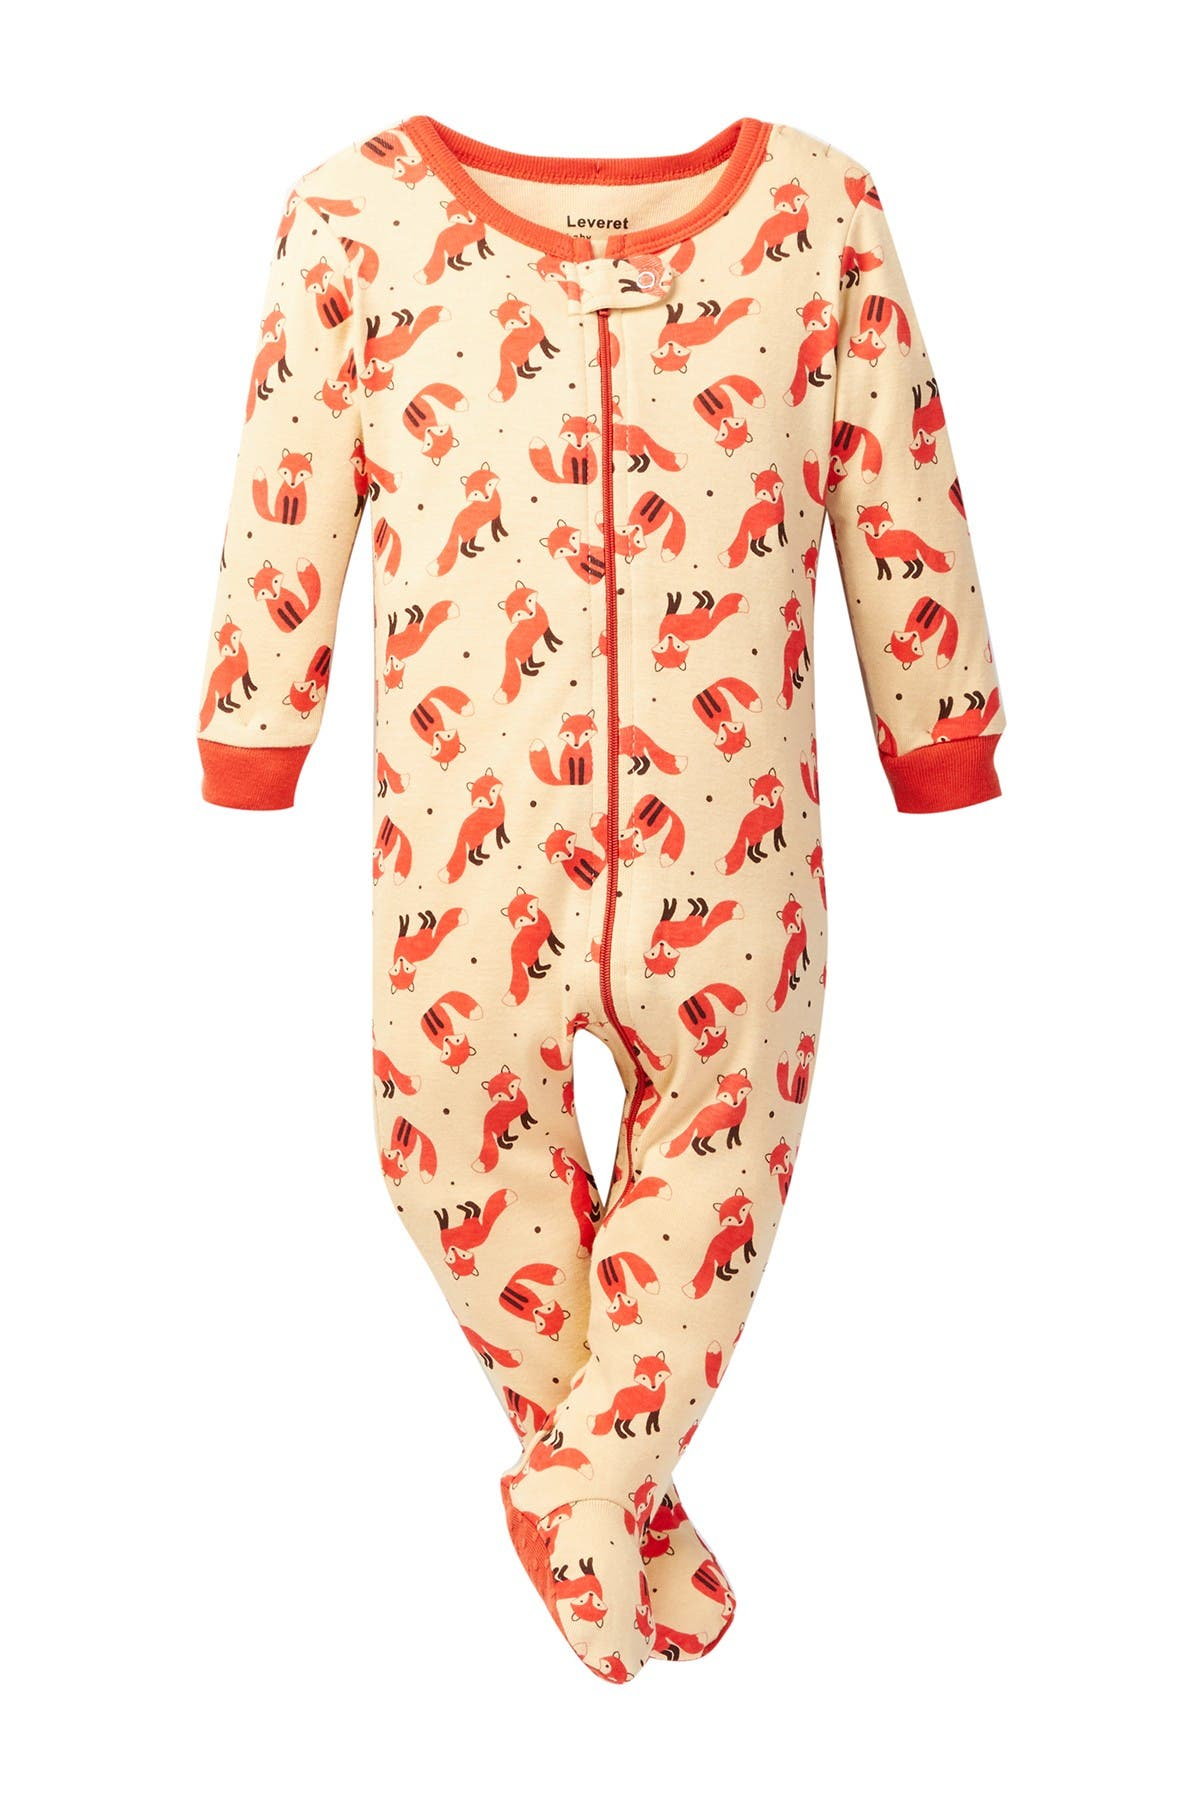 Image of Leveret Fox Print Footed Pajama